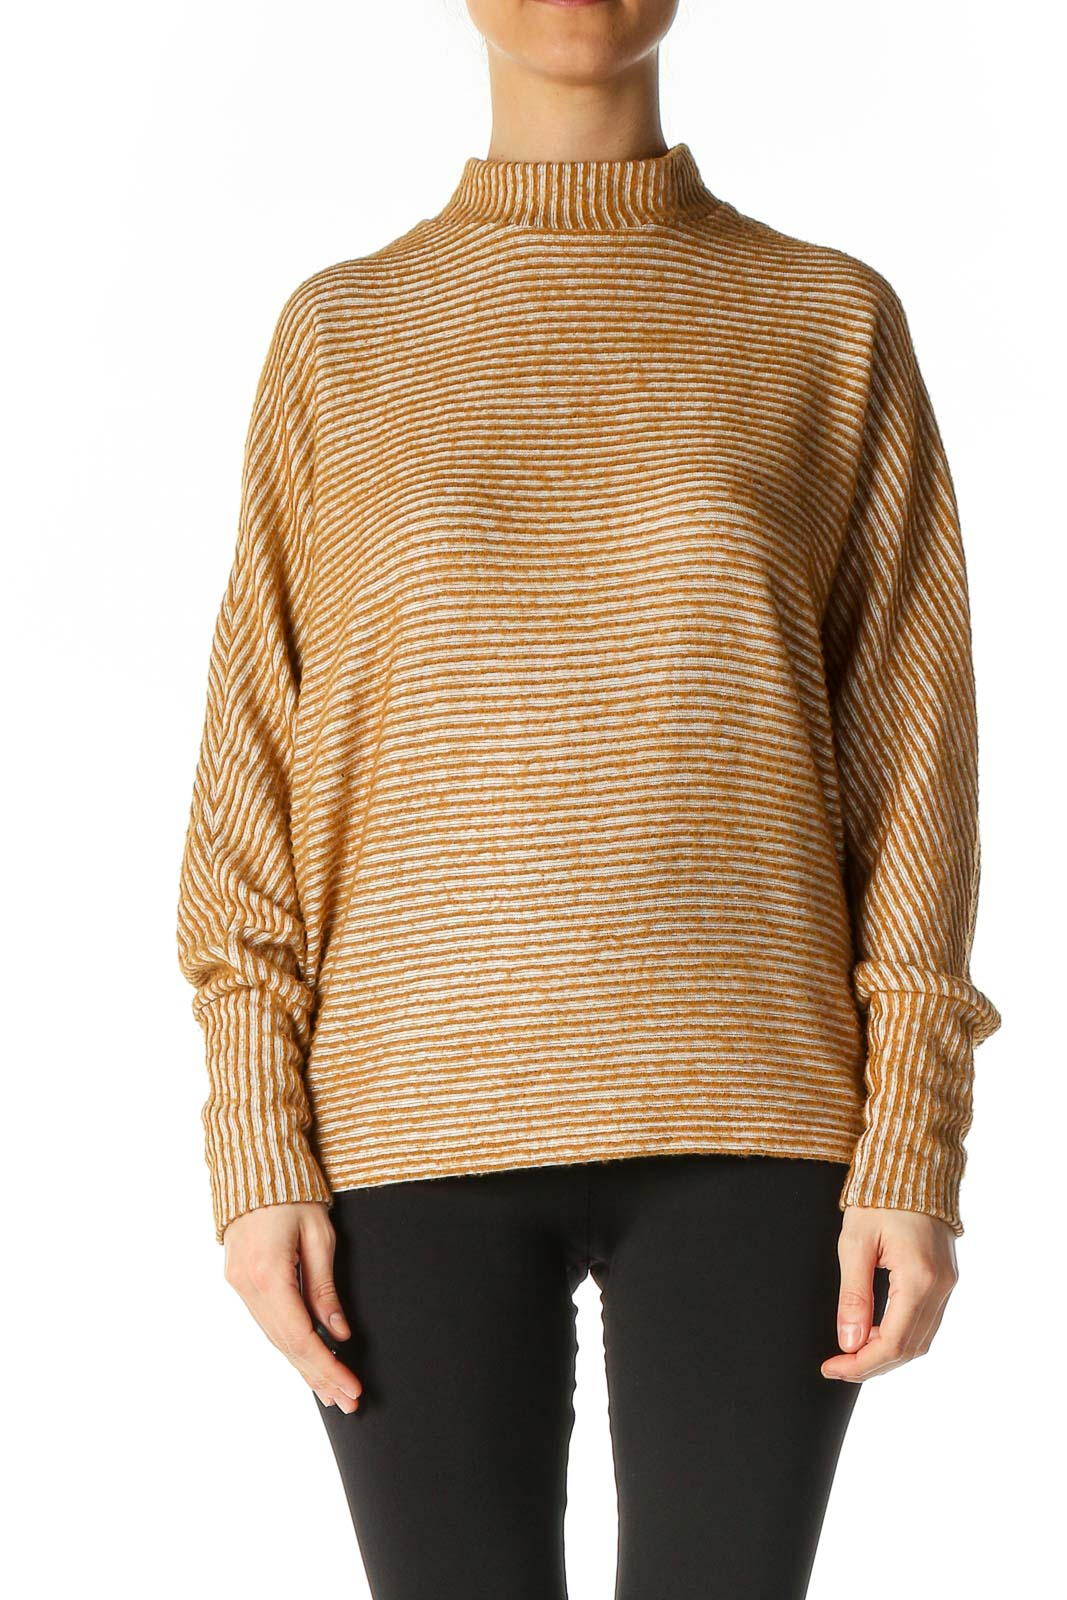 Brown Striped Casual Sweater Front